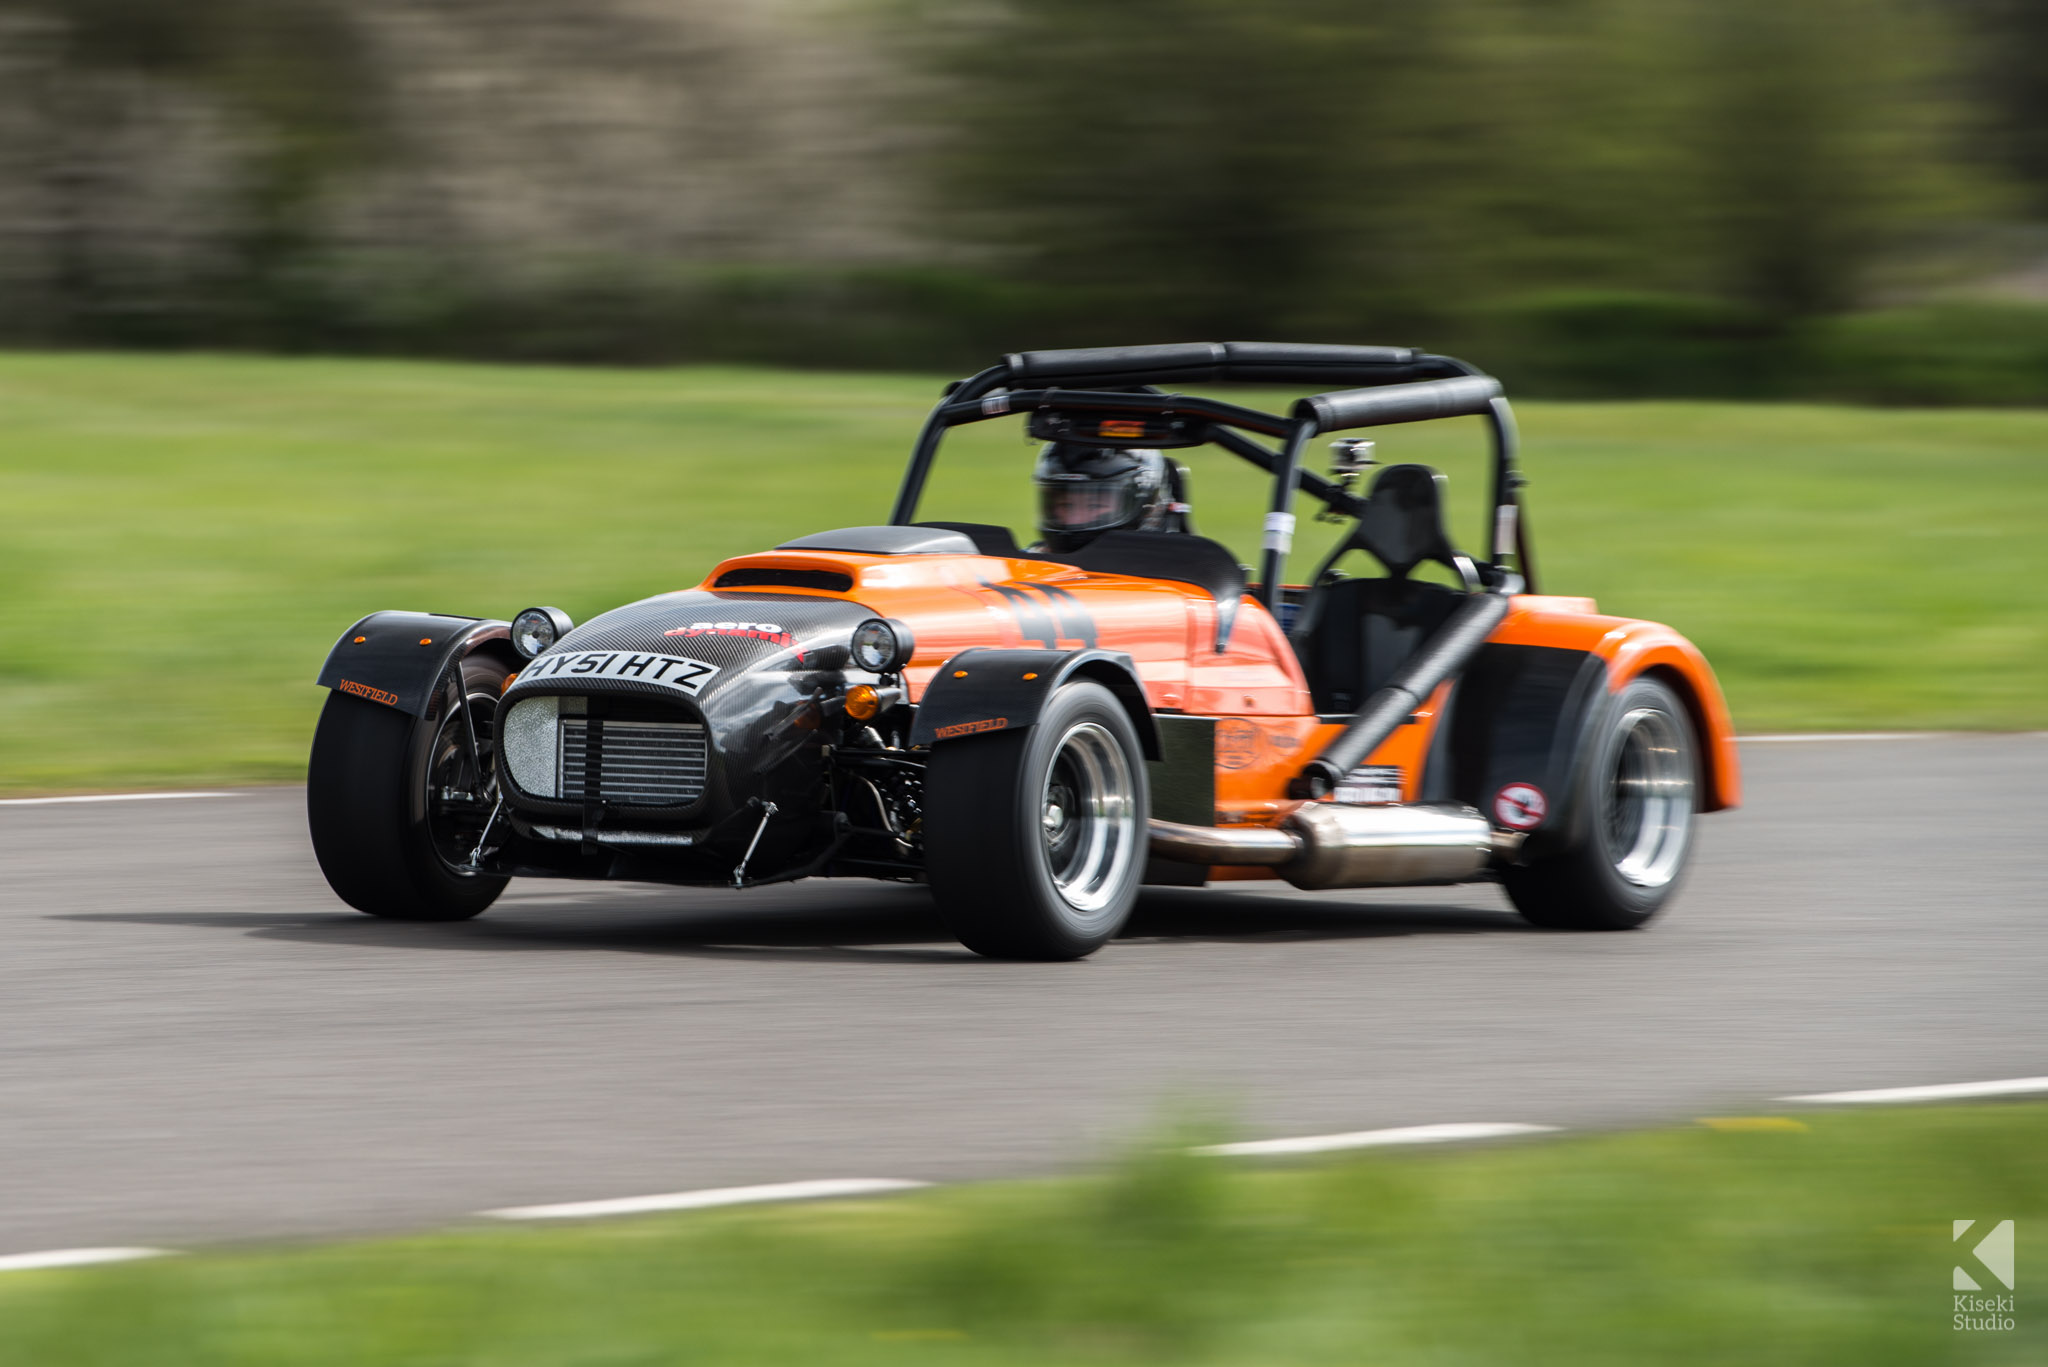 megabusa-westfield-orange-carbon-panning-speed-curborough-sprint-course